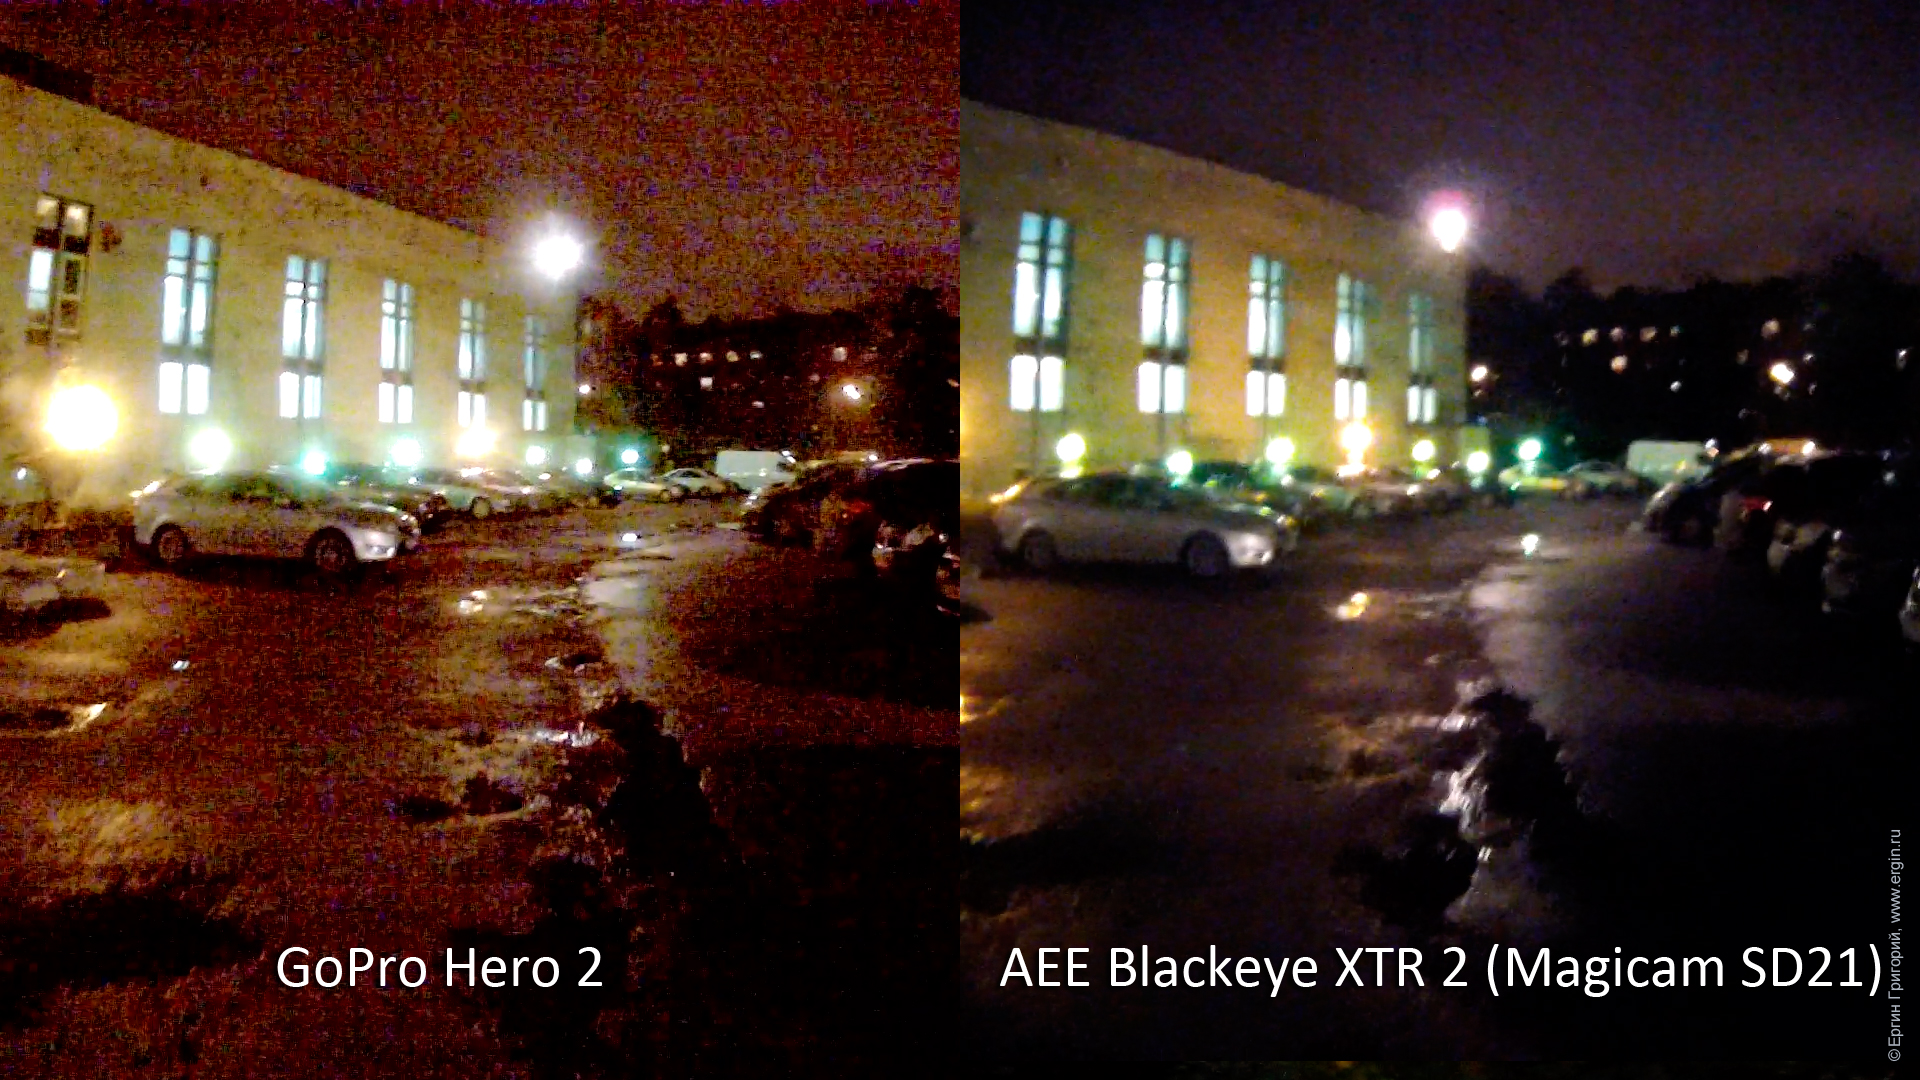 AEE Blackeye XTR 2 (AEE Magicam SD21) против GoPro Hero 2: съемка ночью